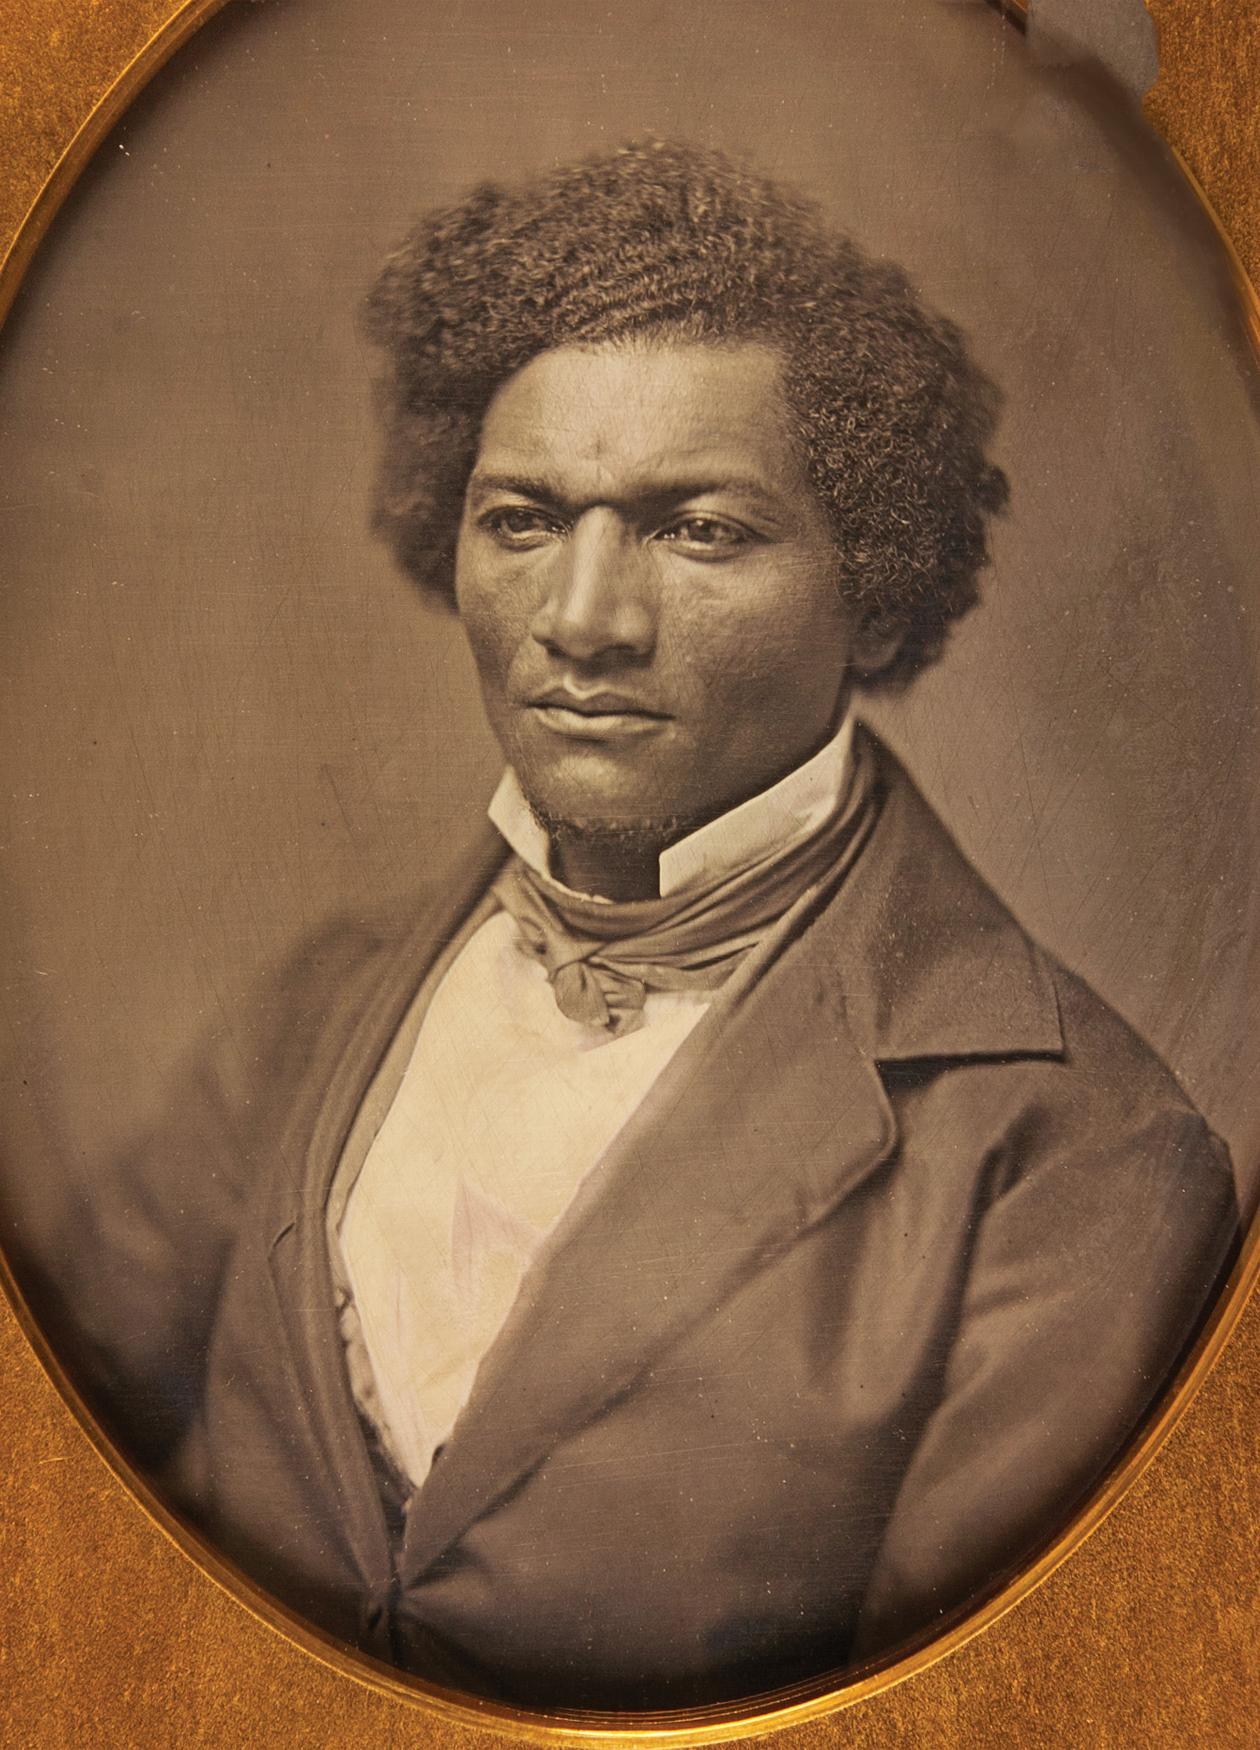 frederick douglass - photo #11